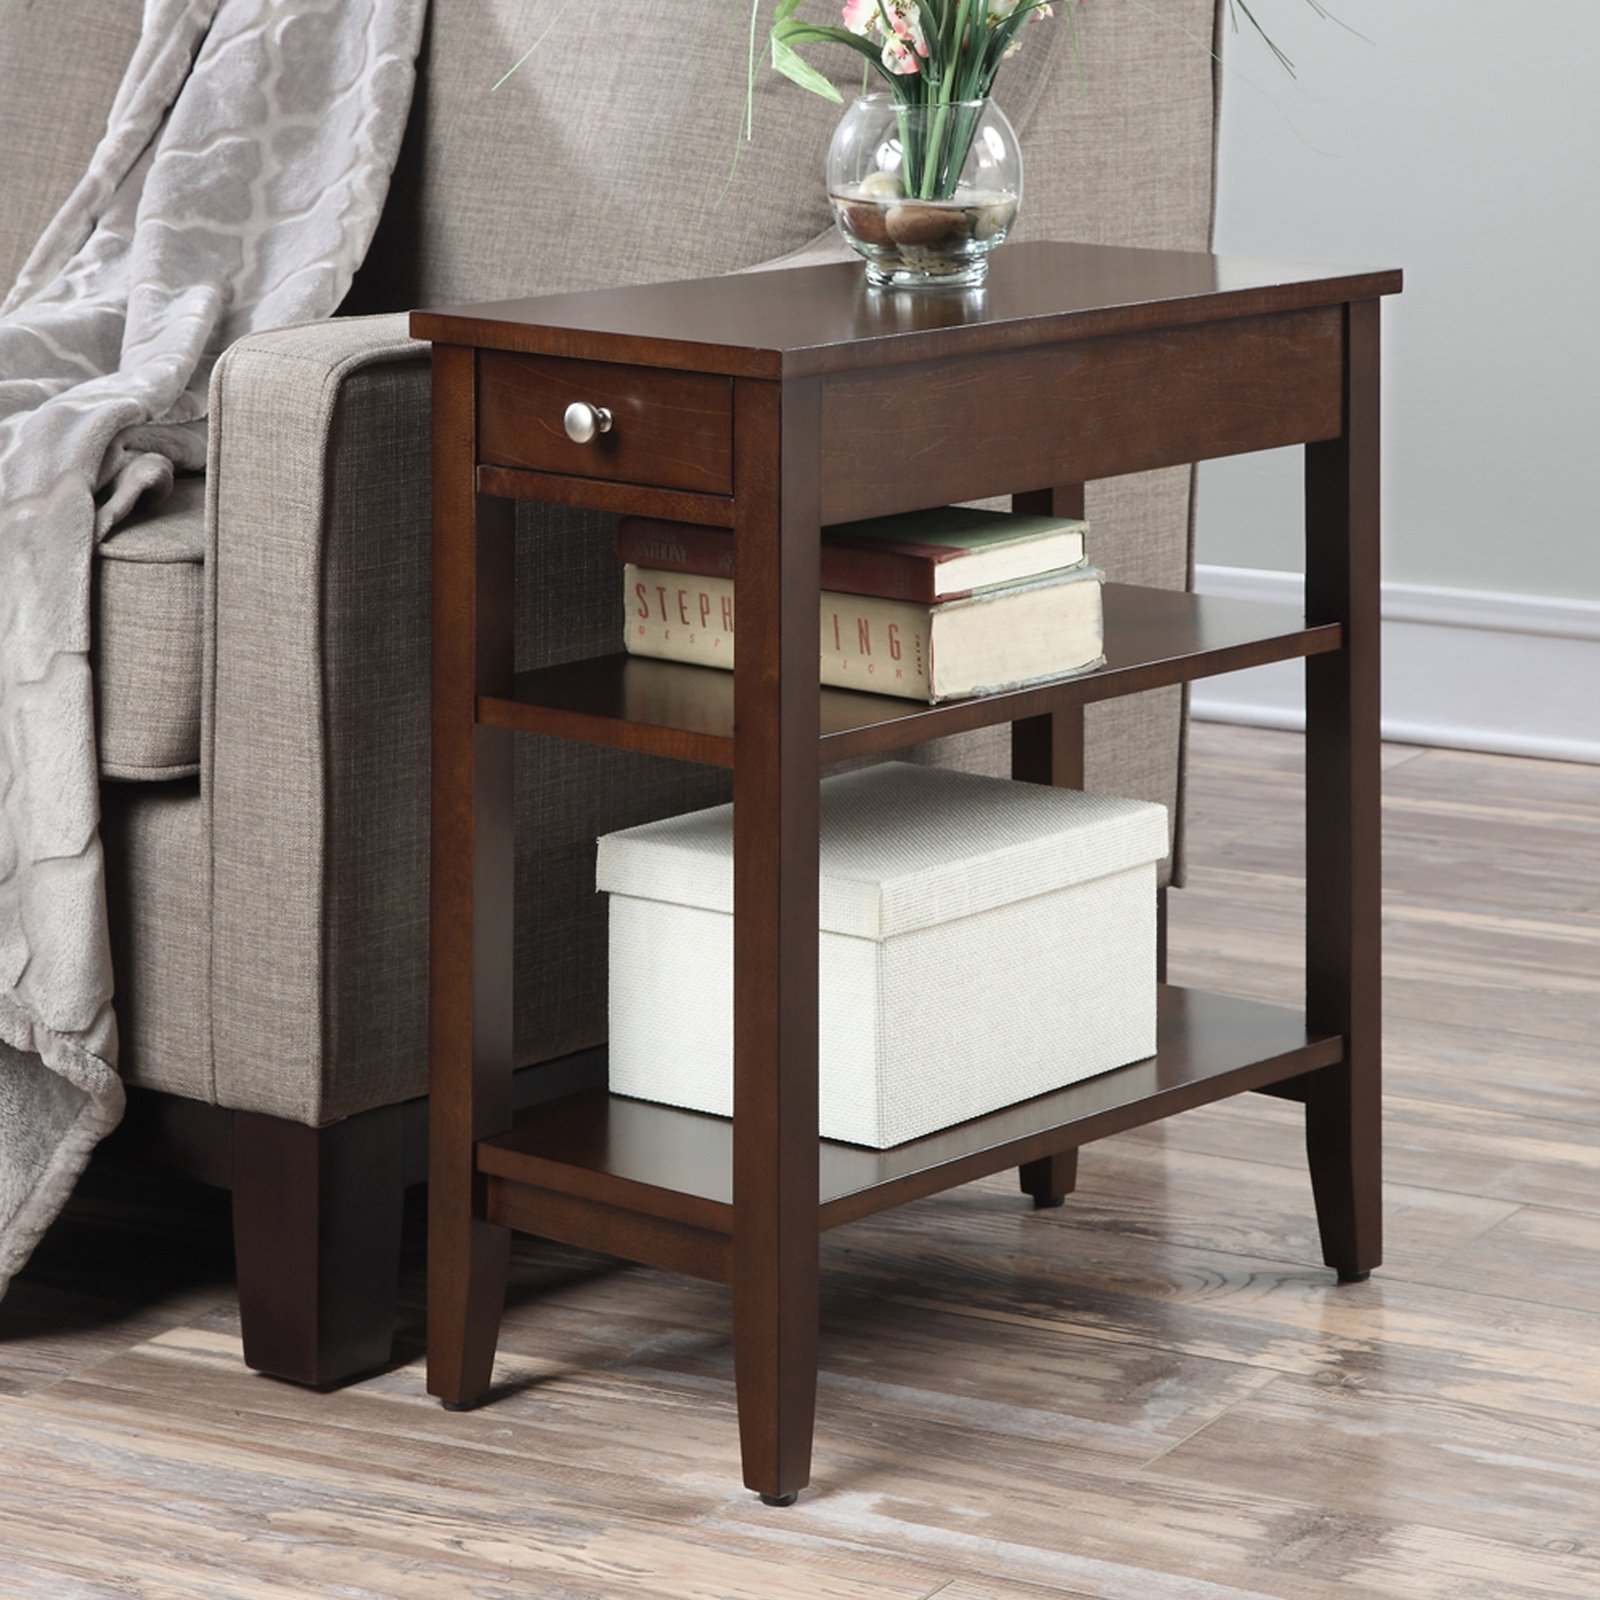 Convenience Concepts American Heritage 3-Tier End Table with Drawer, Multiple Colors